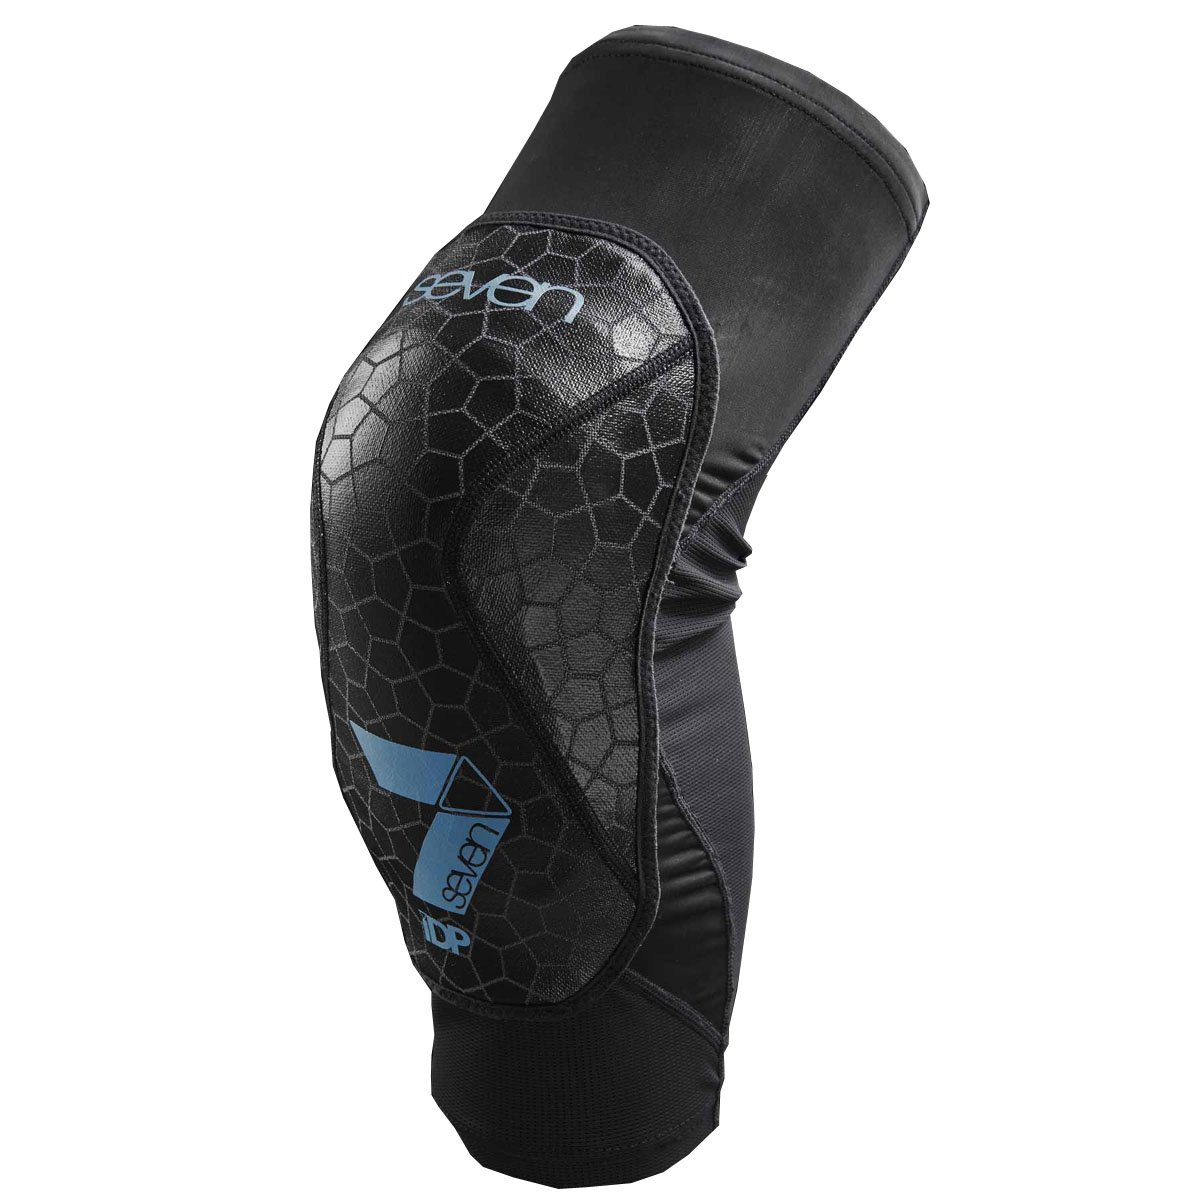 7iDP Covert Knee Protection, Black, Small